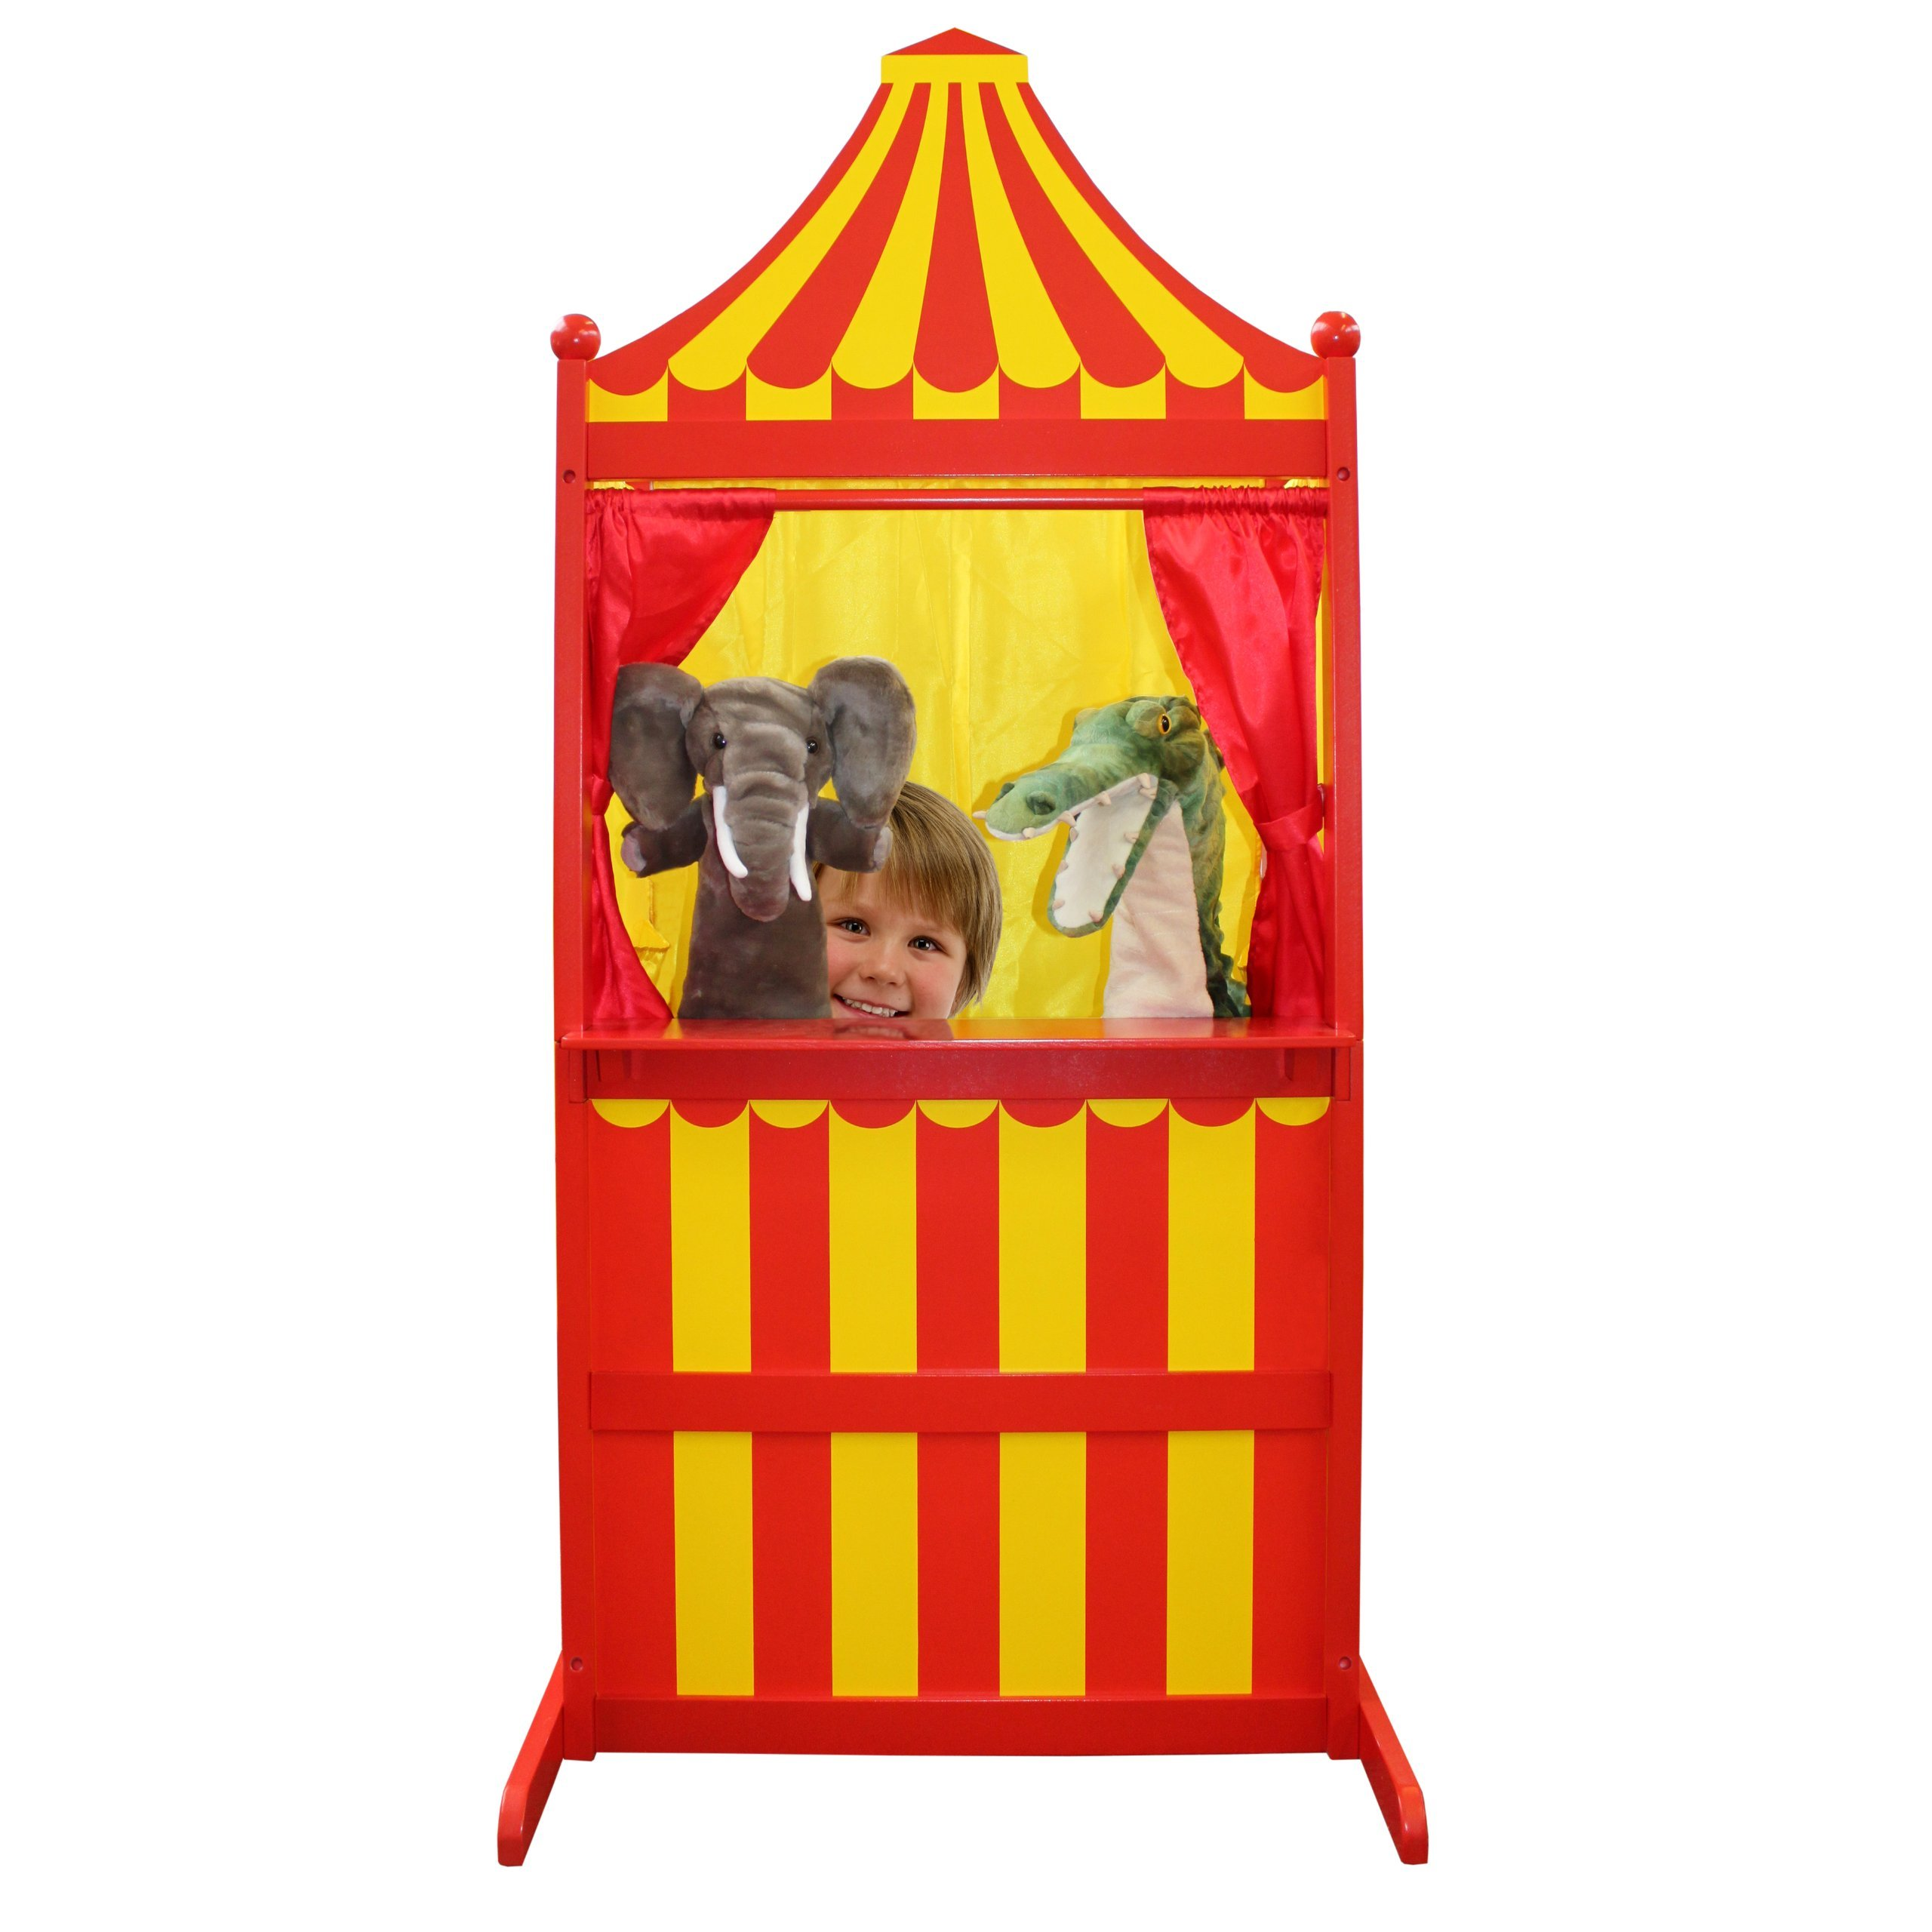 The Puppet Company 3 in 1 Puppet Theatre Children Toys, Red/Yellow